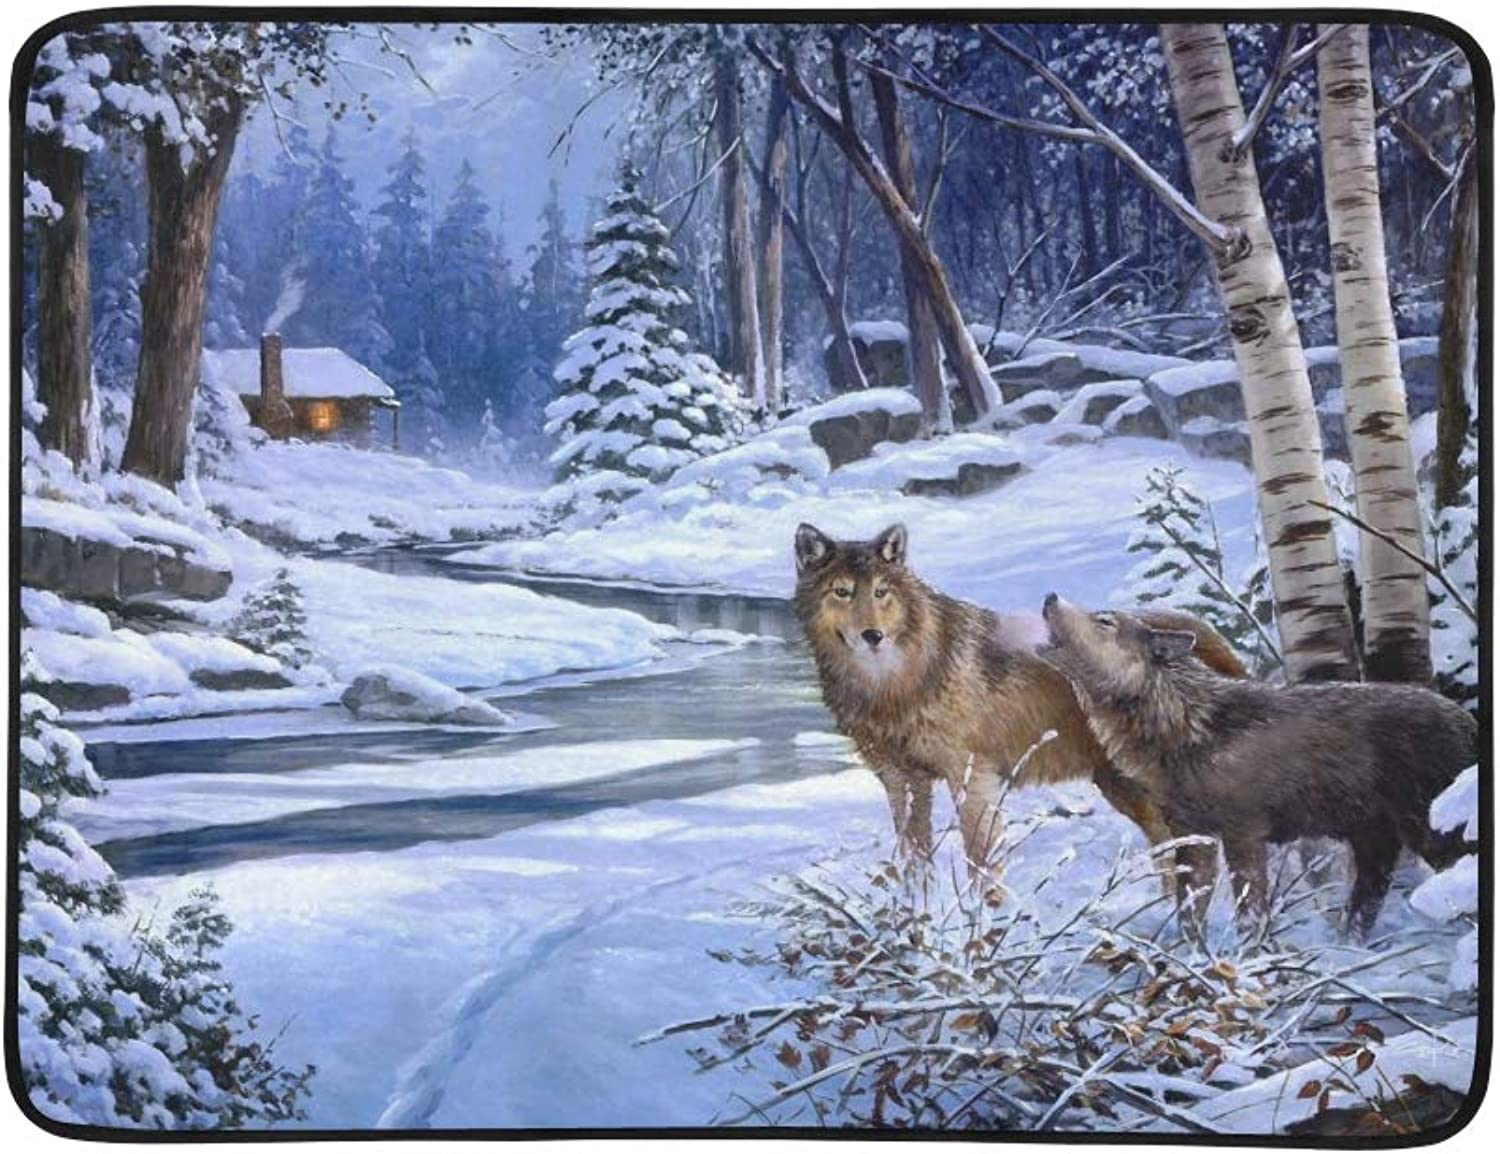 Two Wolves in The Winter Snowy Forest Pattern Portable and Foldable Blanket Mat 60x78 Inch Handy Mat for Camping Picnic Beach Indoor Outdoor Travel